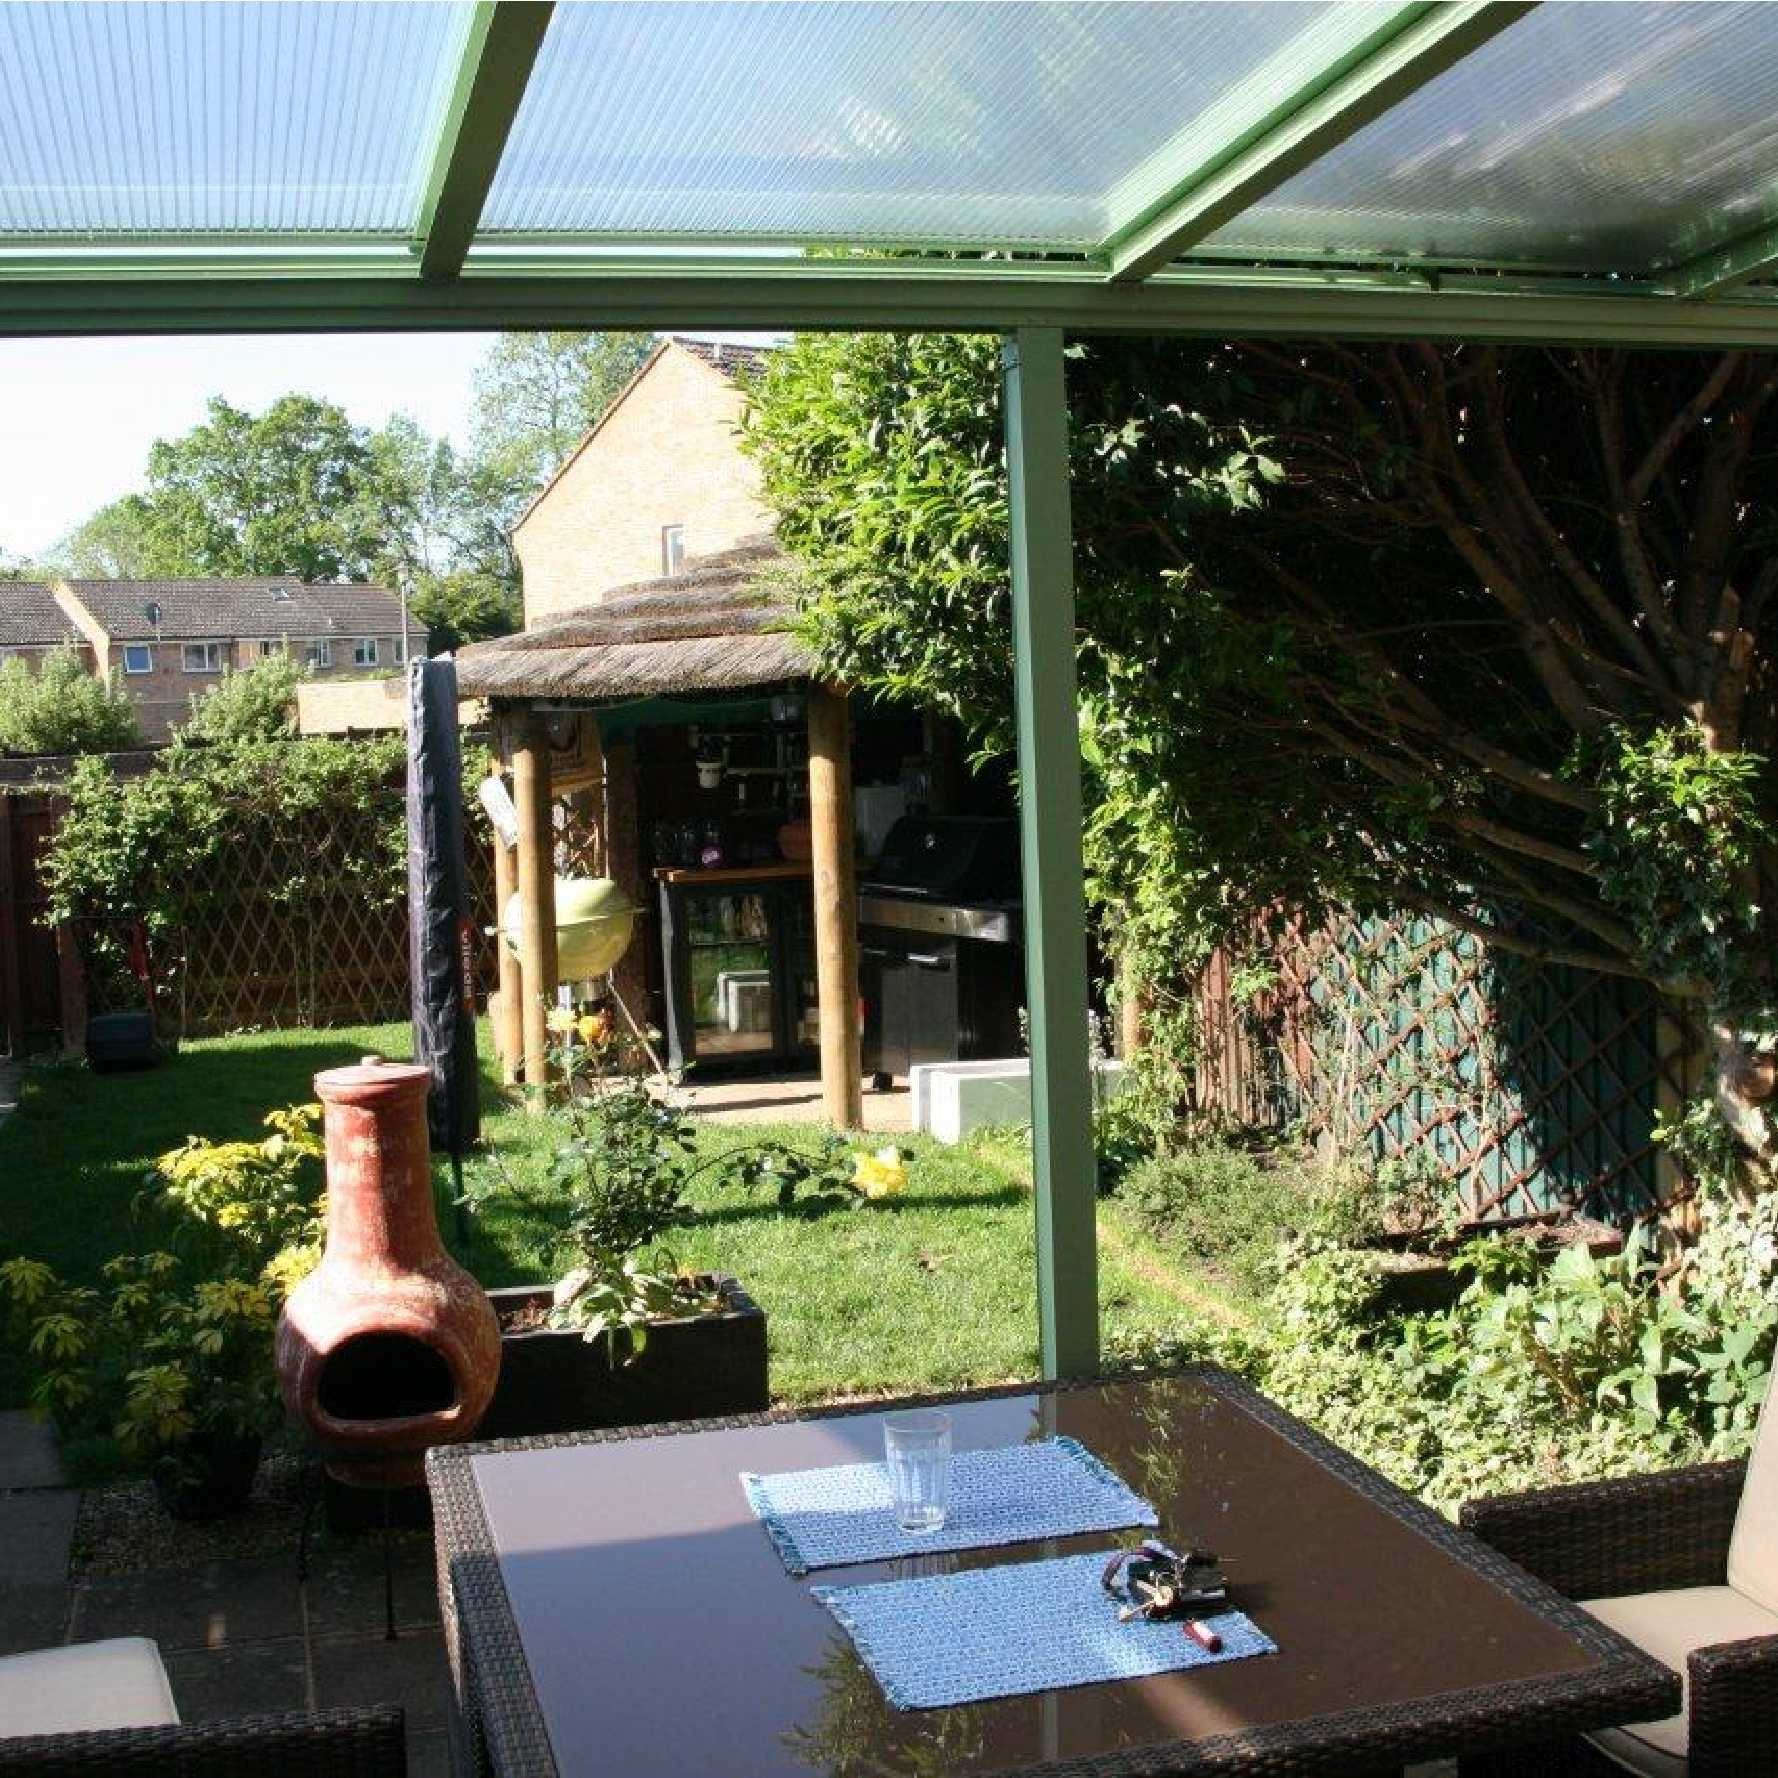 Affordable Omega Smart White Lean-To Canopy with 16mm Polycarbonate Glazing - 11.6m (W) x 2.5m (P), (5) Supporting Posts